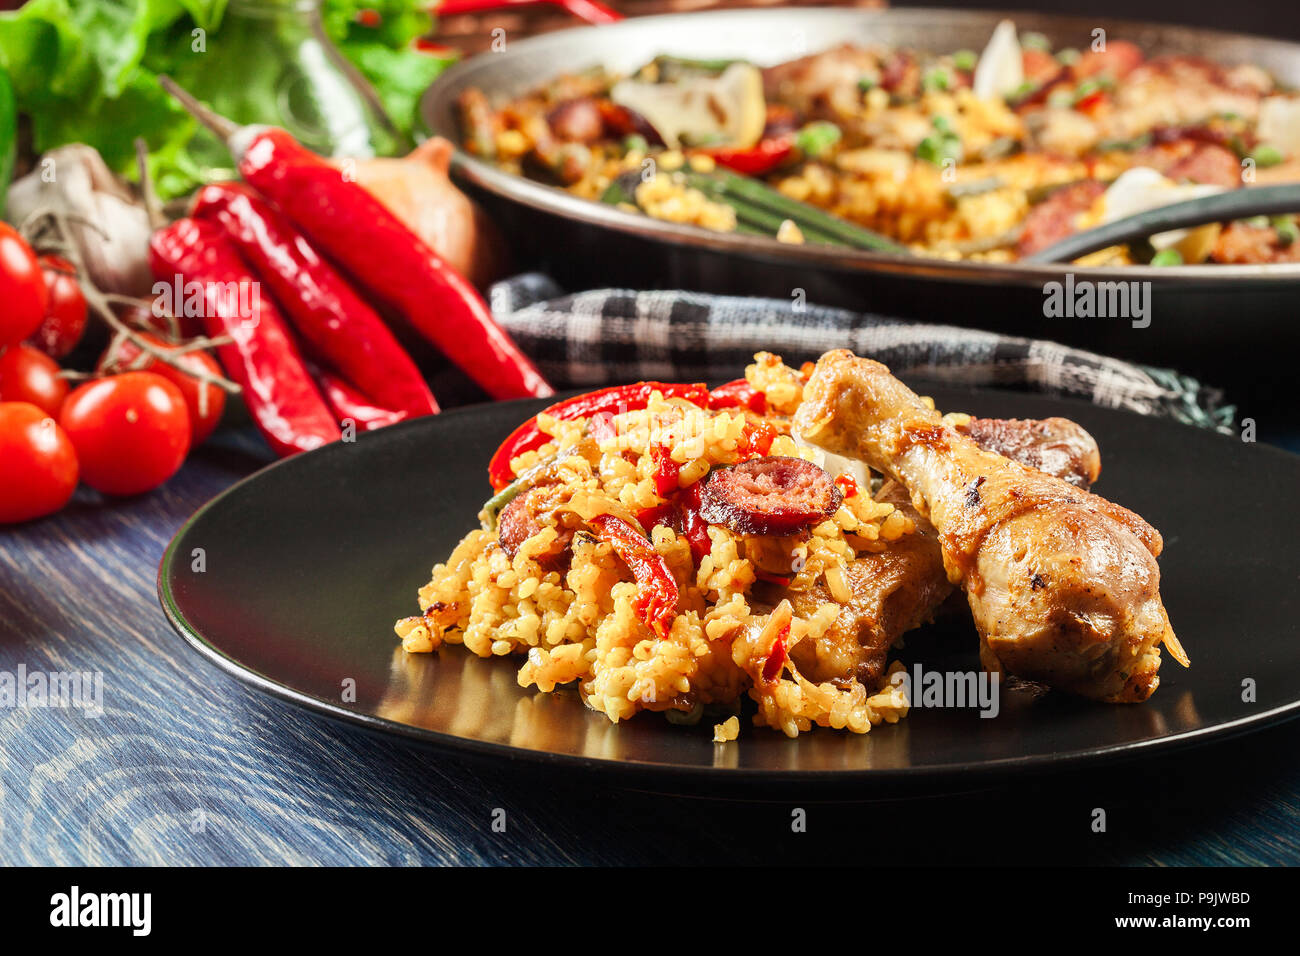 Traditional paella with chicken legs, sausage chorizo and vegetables served on black plate. Spanish cuisine Stock Photo